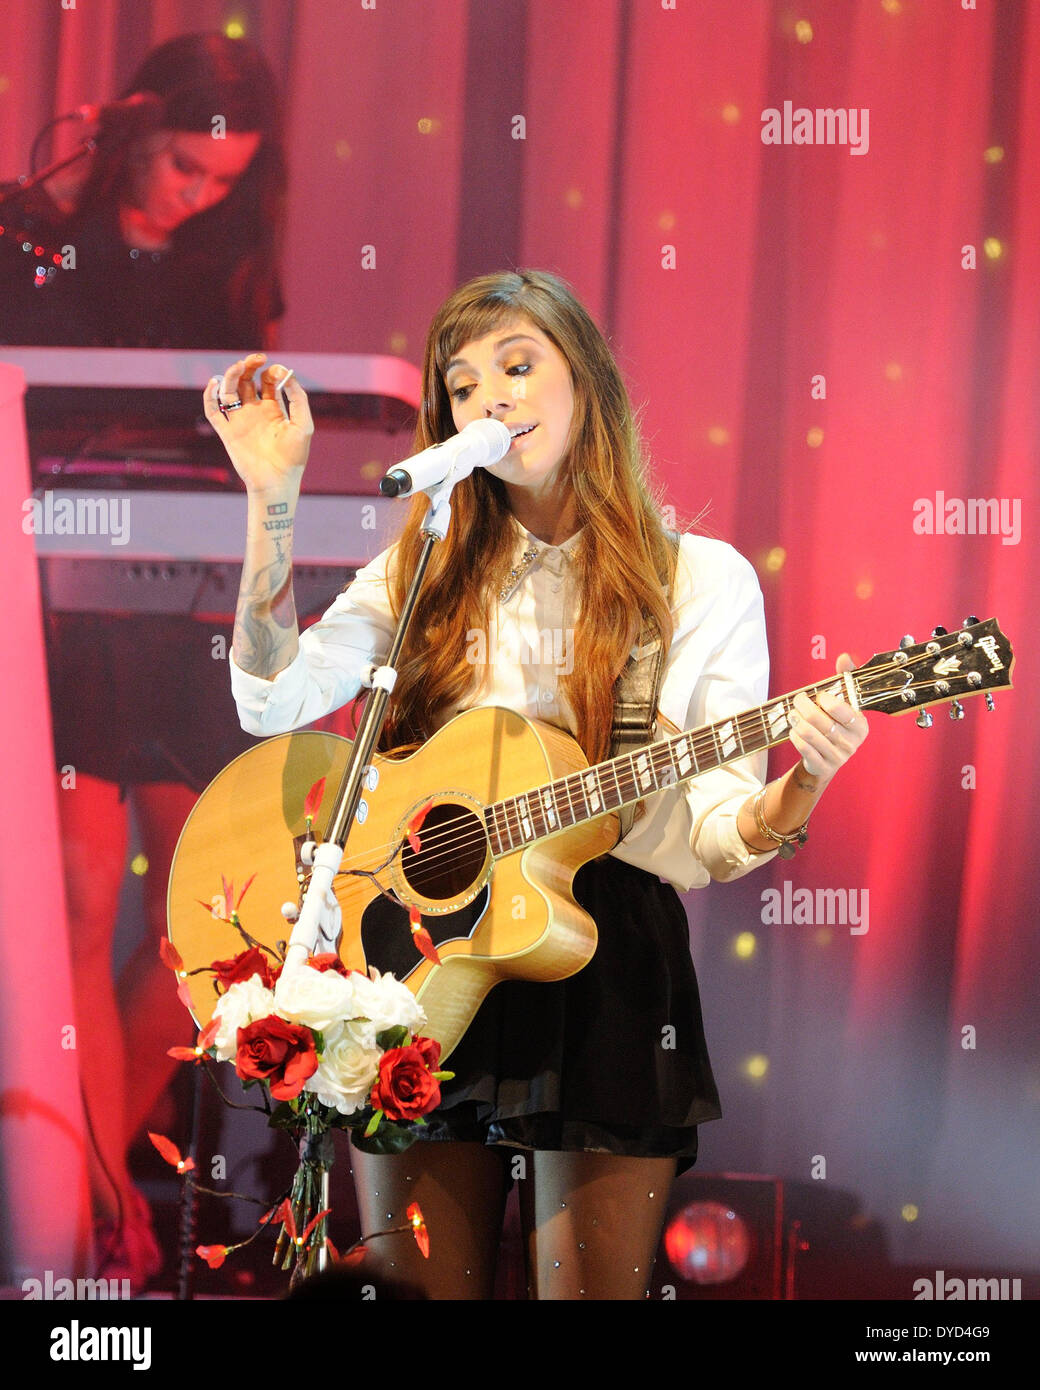 Toronto, Canada. 14th April 2014. Christina Perri performs a sold-out sold at Toronto's Danforth Music Hall during THE HEAD OR HEART TOUR in promoting her latest album 'Head or Heart'. Credit:  EXImages/Alamy Live News - Stock Image